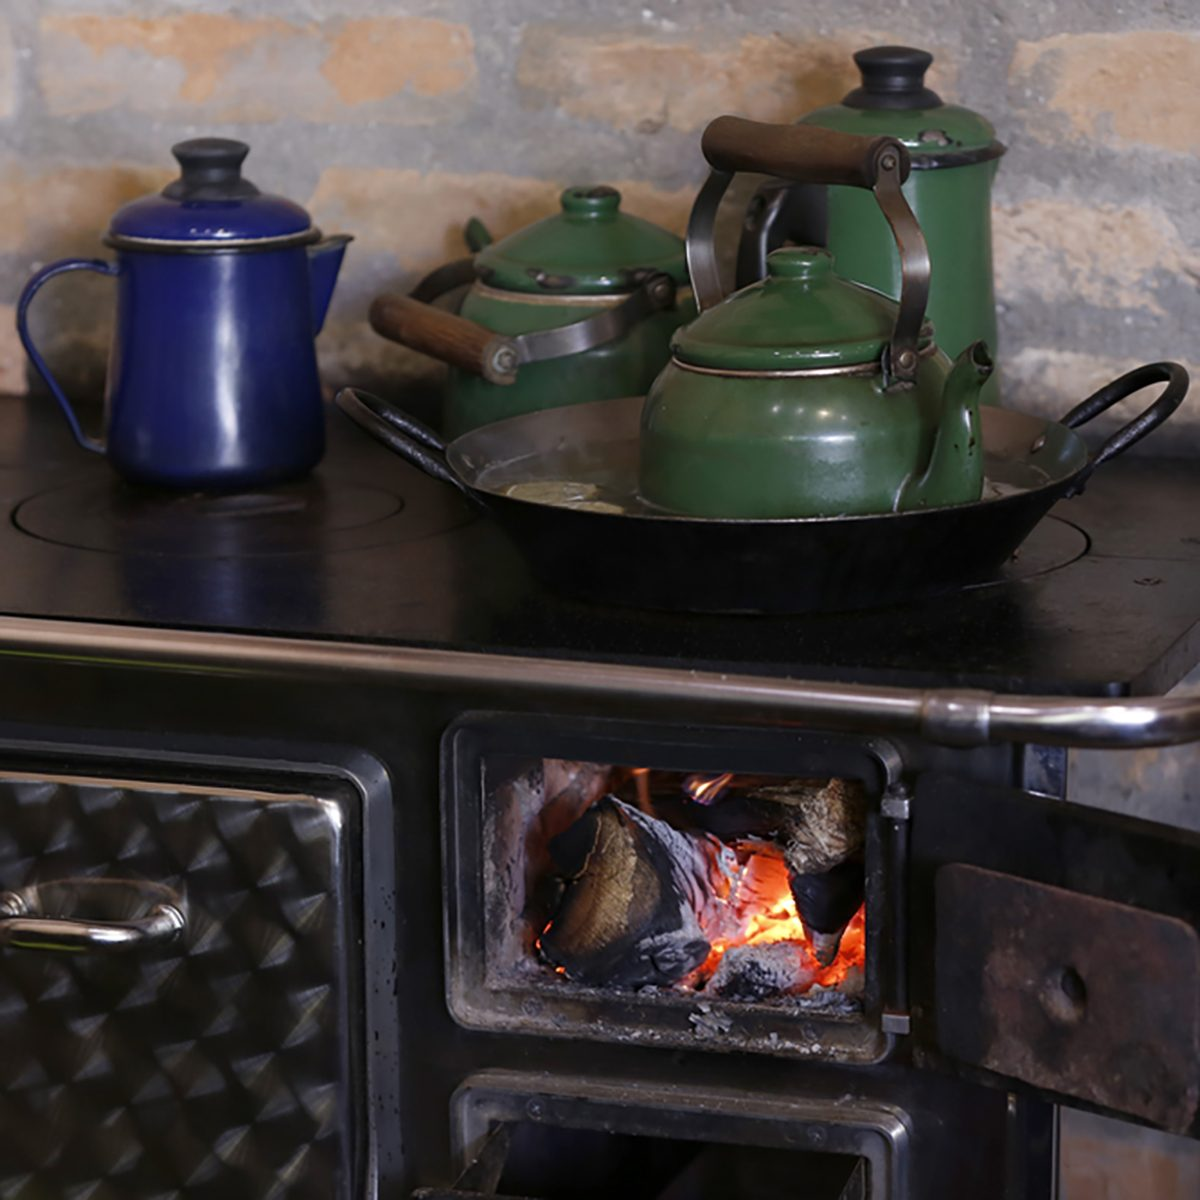 warm fire heating a coffee kettle in wood burning stove. Traditional style in countryside of Brazil